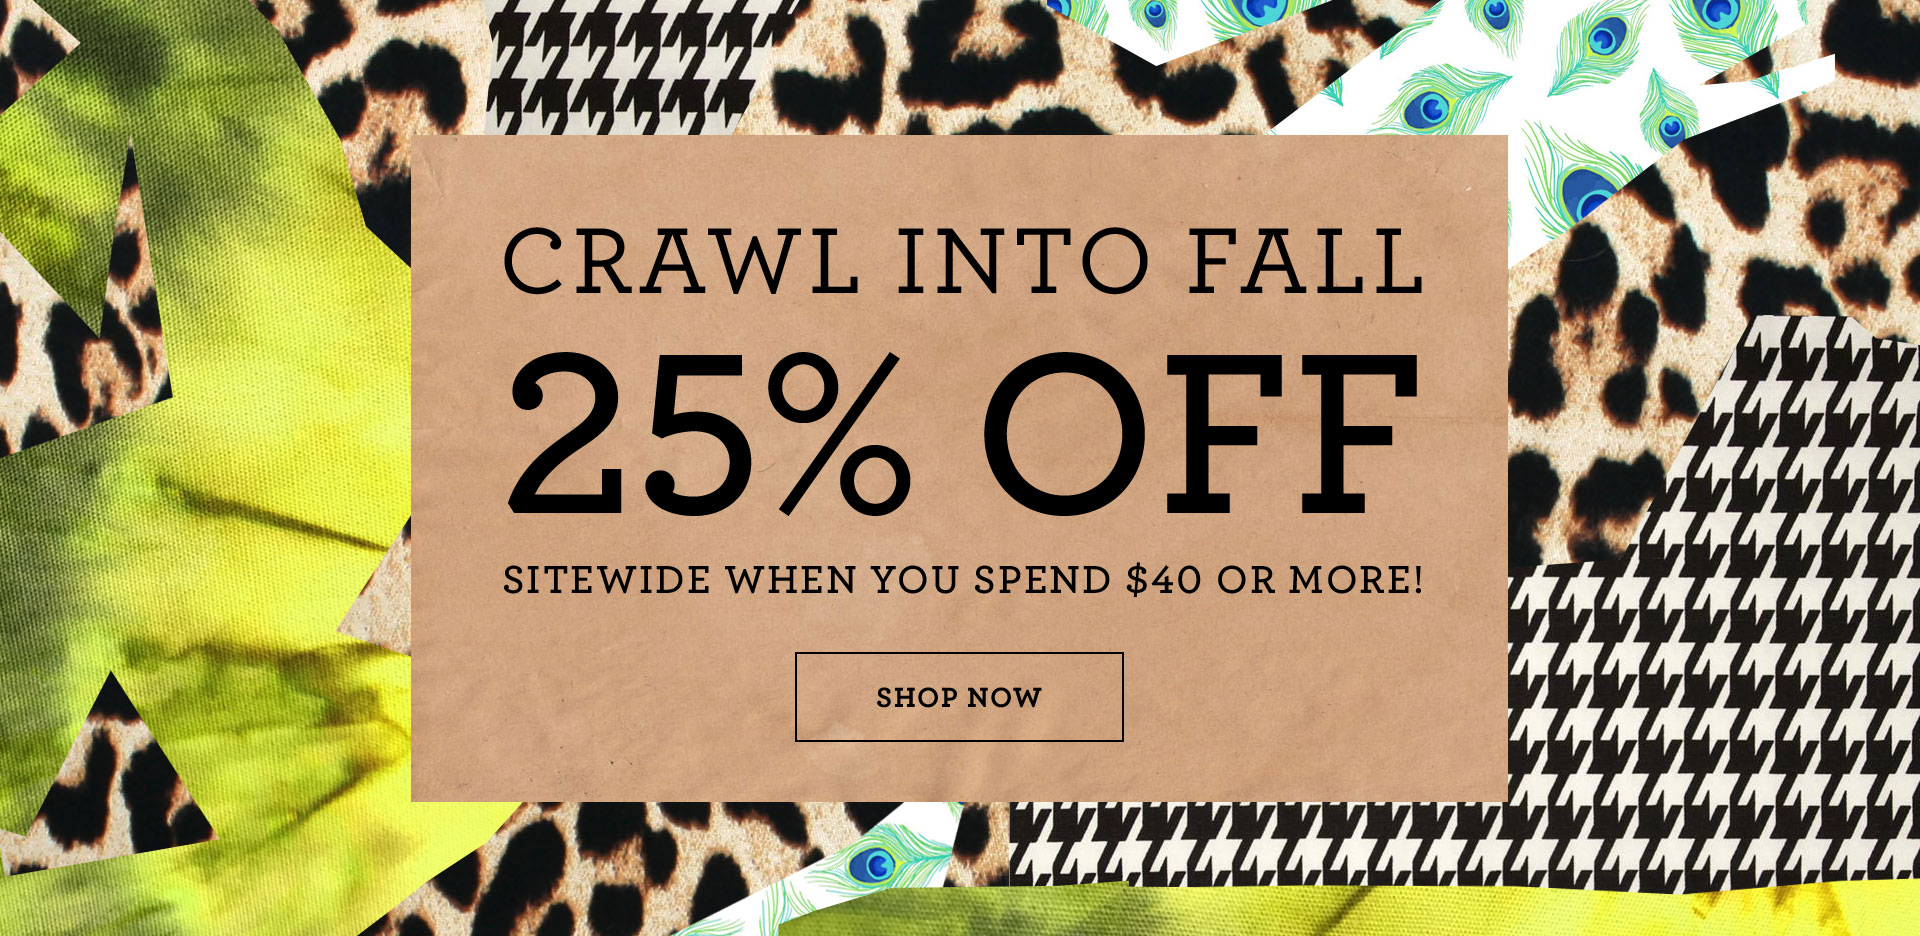 Crwal into Fall